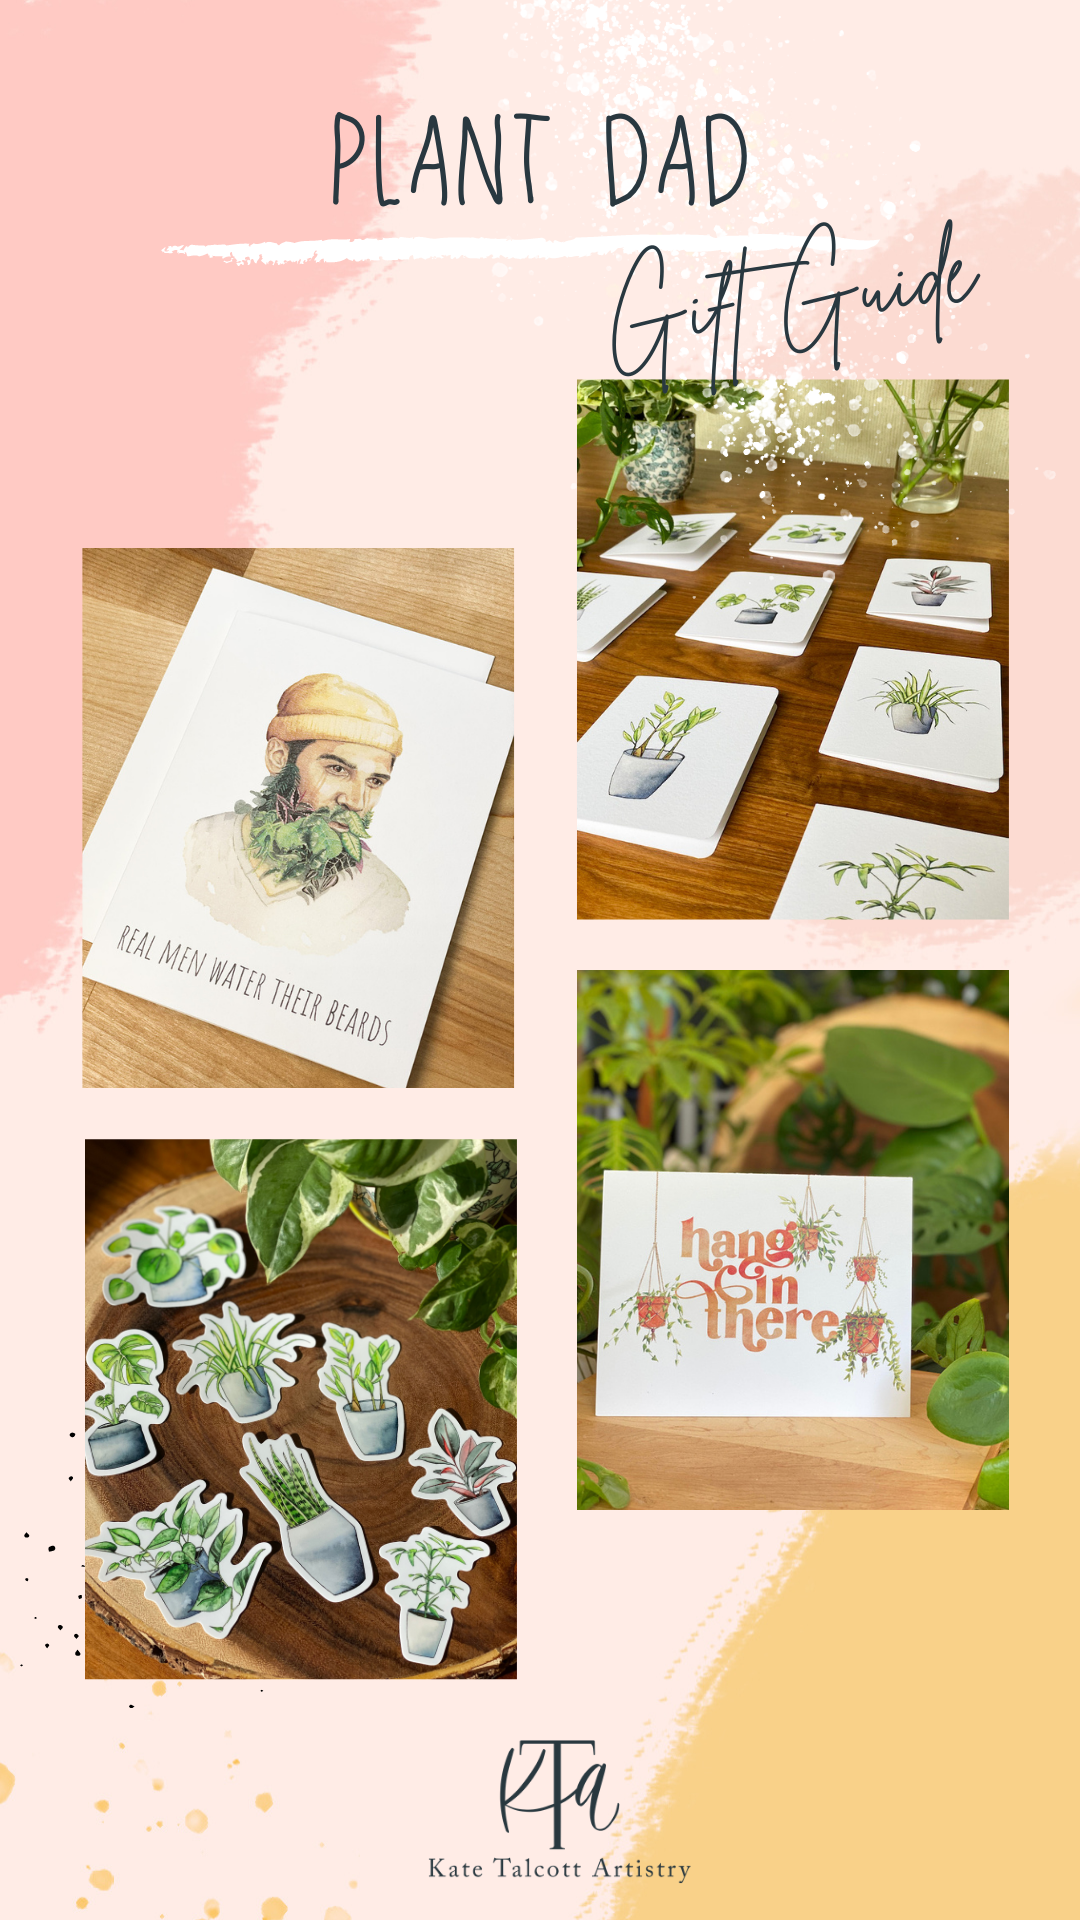 Plant Dad Gift Guide with cards, stickers, and card sets